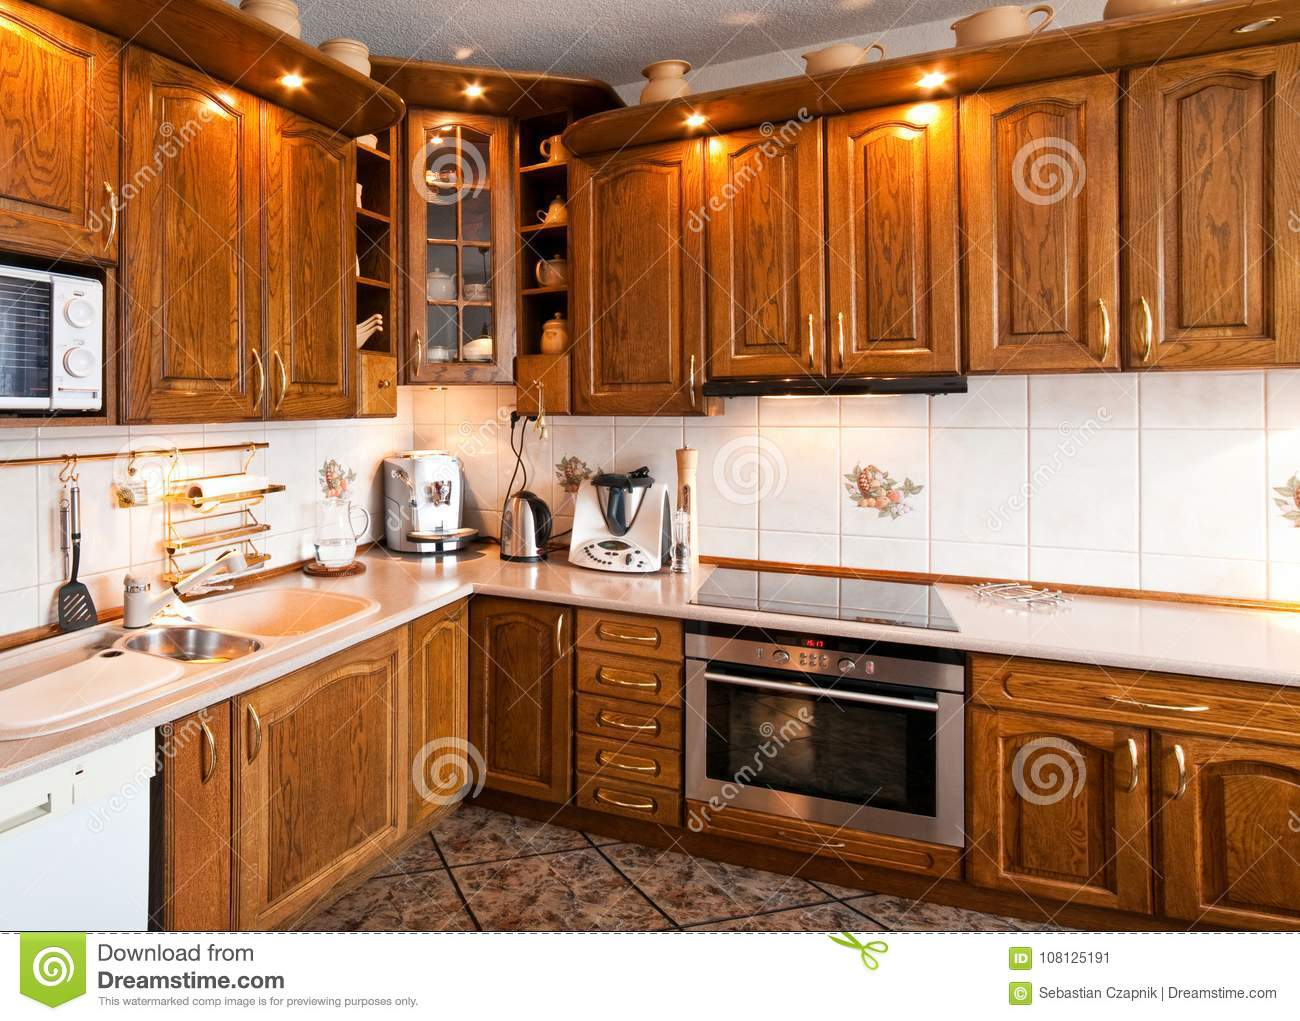 Only Muebles Interior Of A Classic Kitchen With Wooden Furniture Stock Image